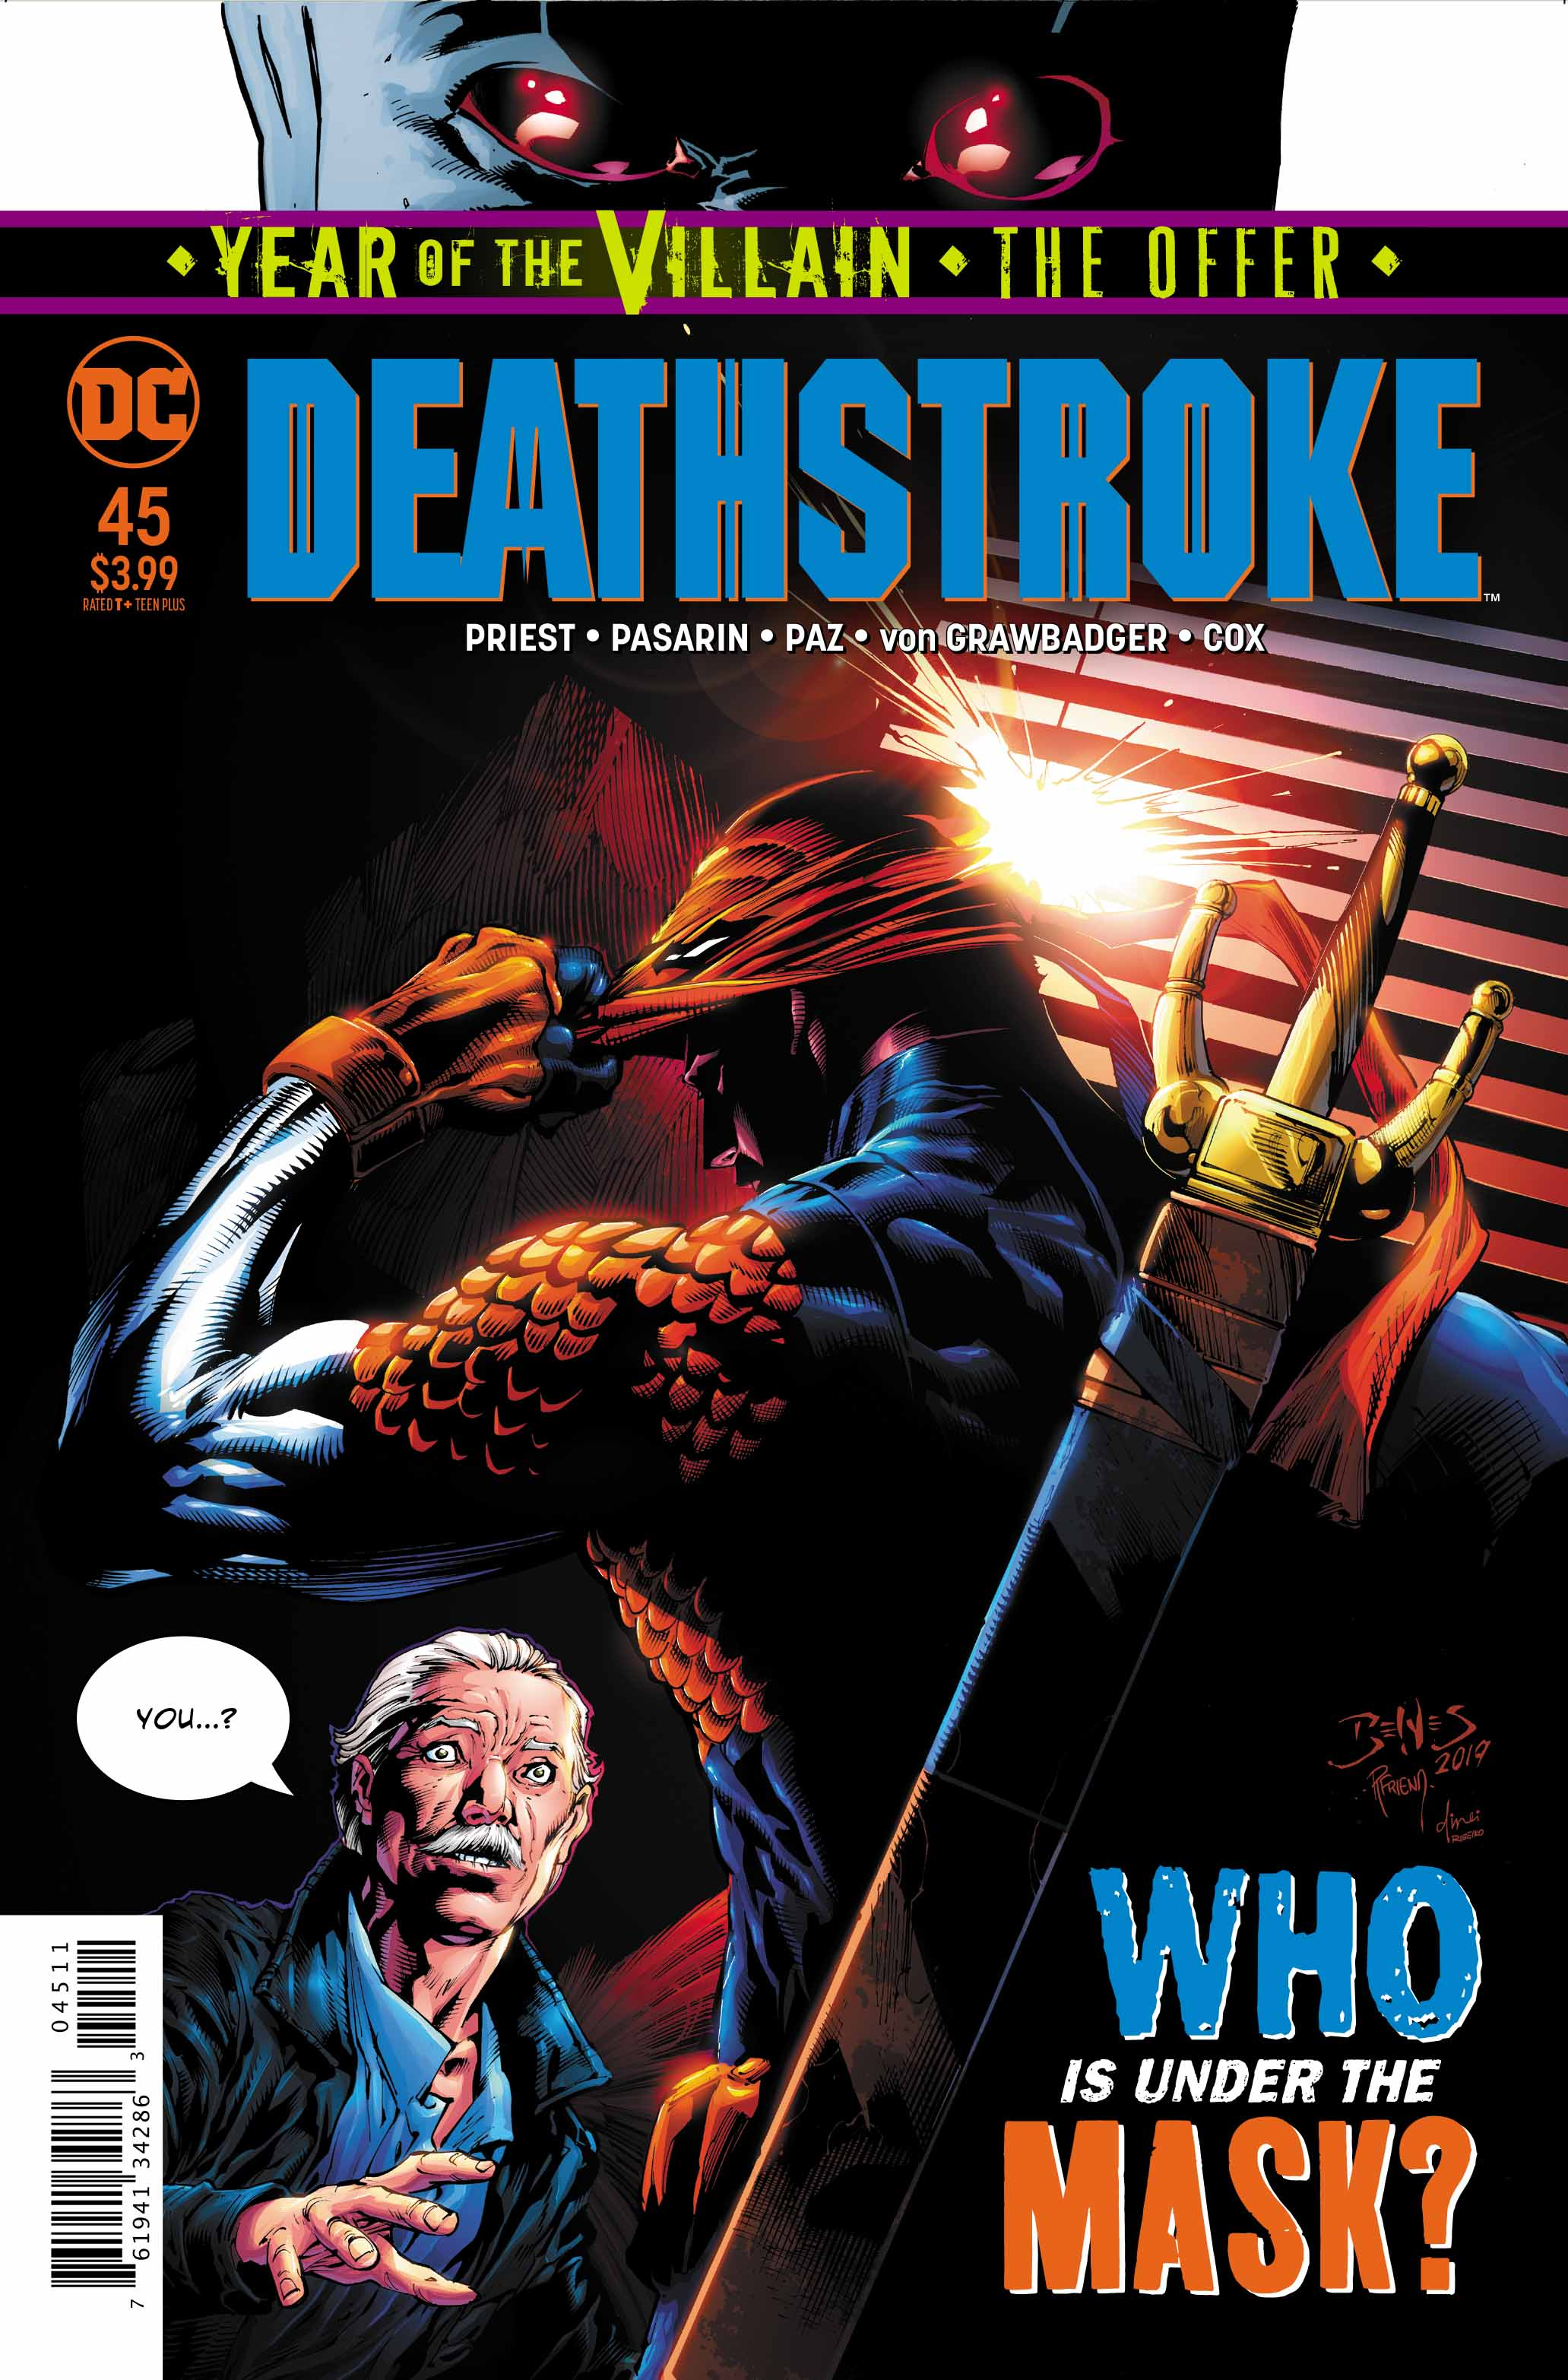 Deathstroke #45 Review